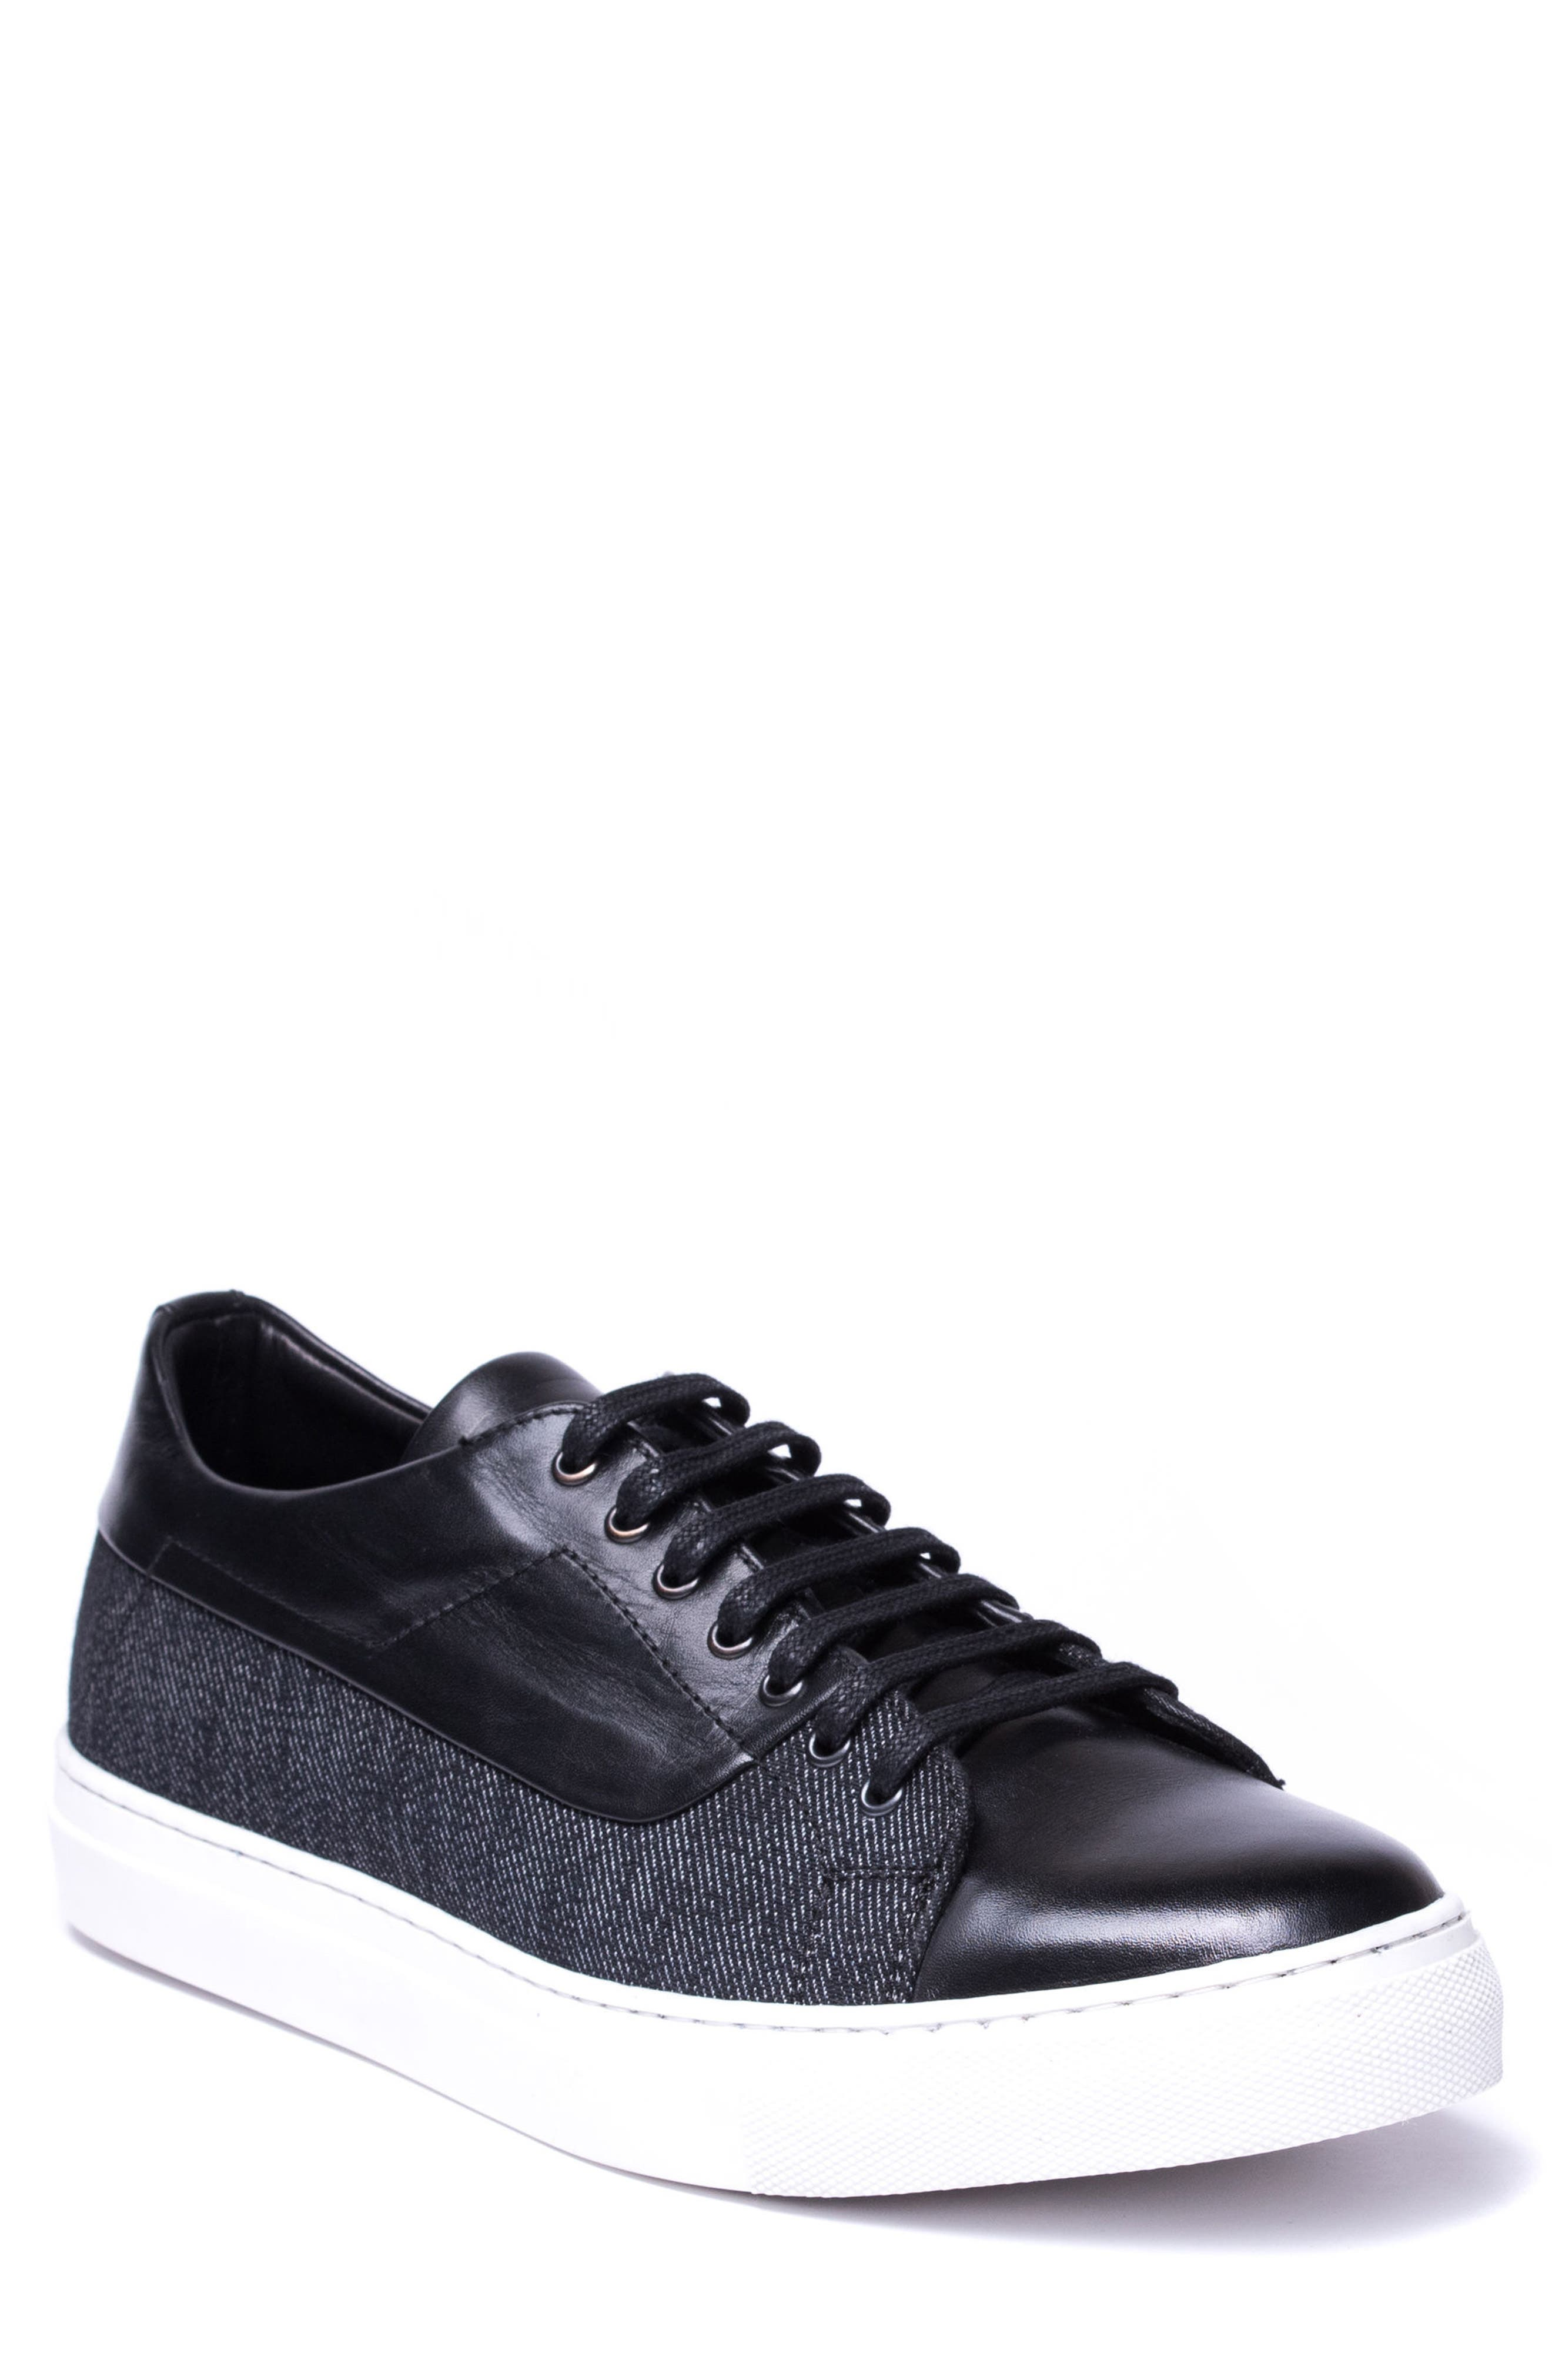 Luke Low Top Sneaker,                         Main,                         color, BLACK LEATHER